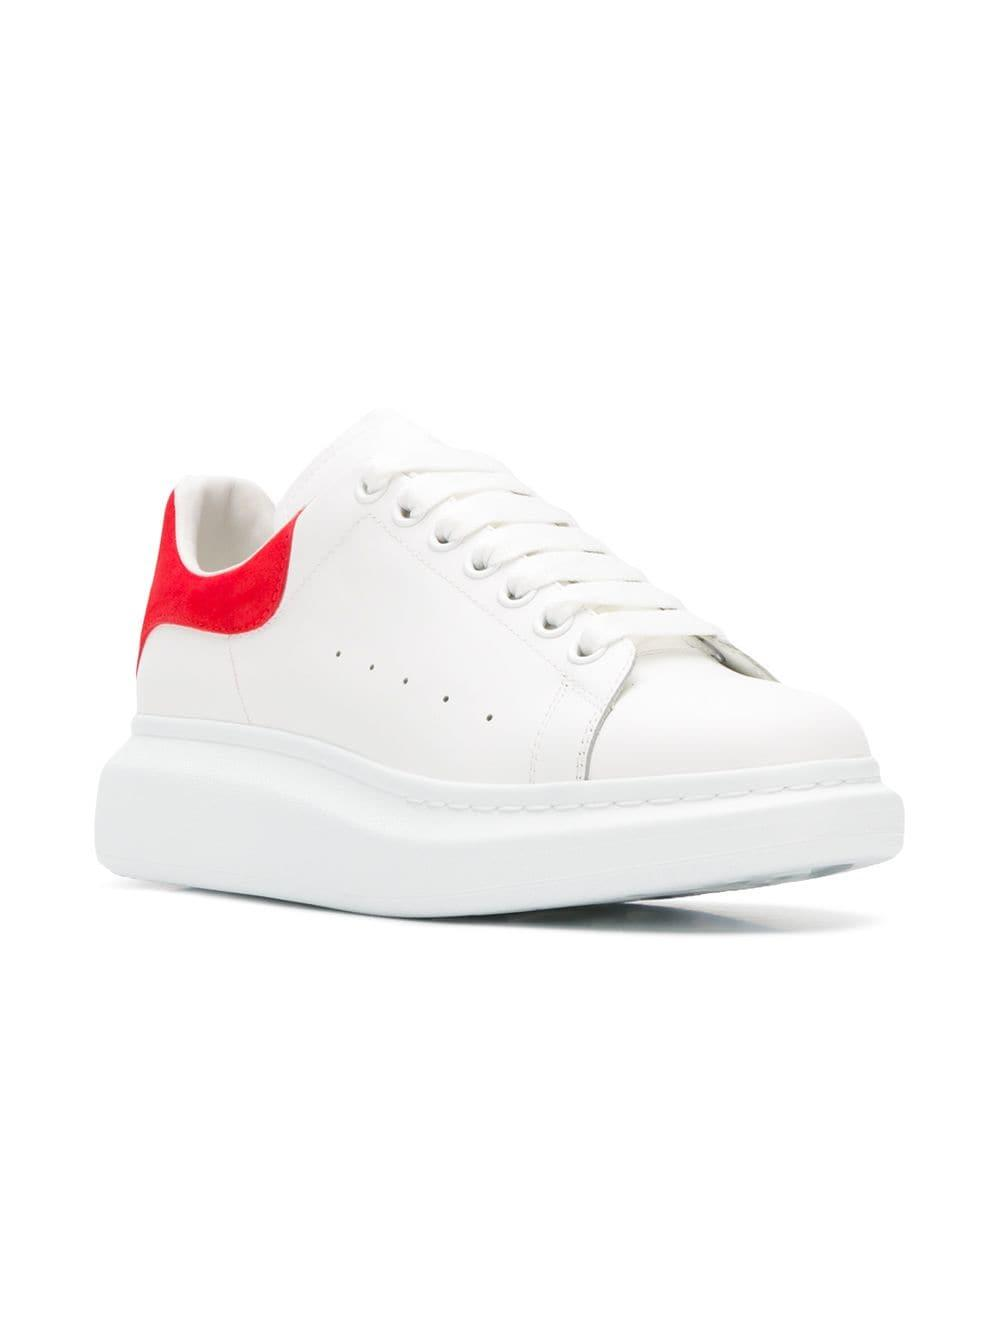 e8411ff3bfb08 Lyst - Alexander McQueen Chunky Low-top Sneakers in White for Men - Save 45%